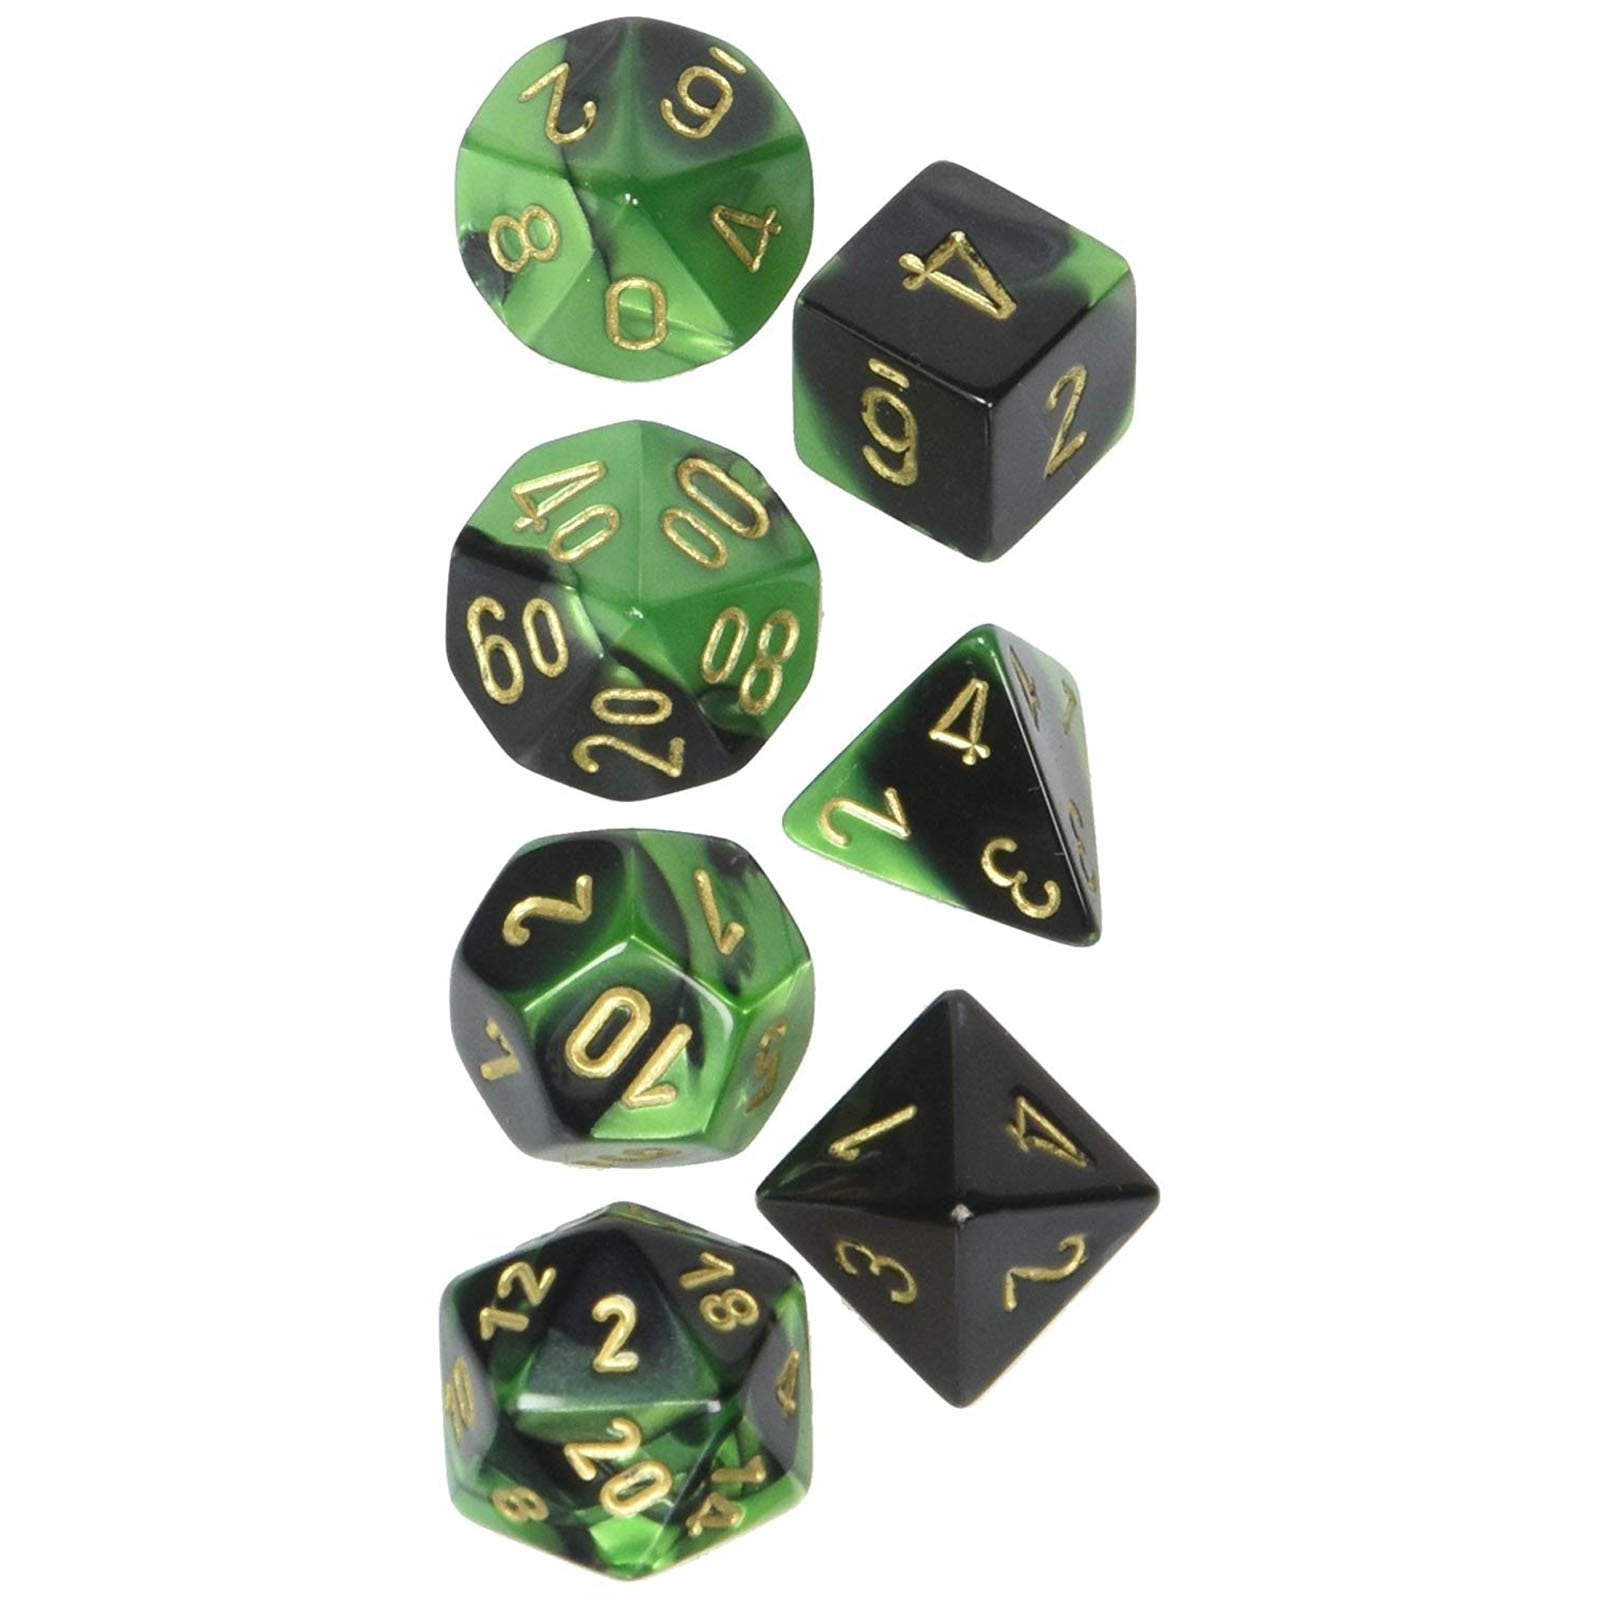 Chessex 601982022 Black-Green//Gold CHX26439 Set Dadi Gemini 7 Chessex Dice